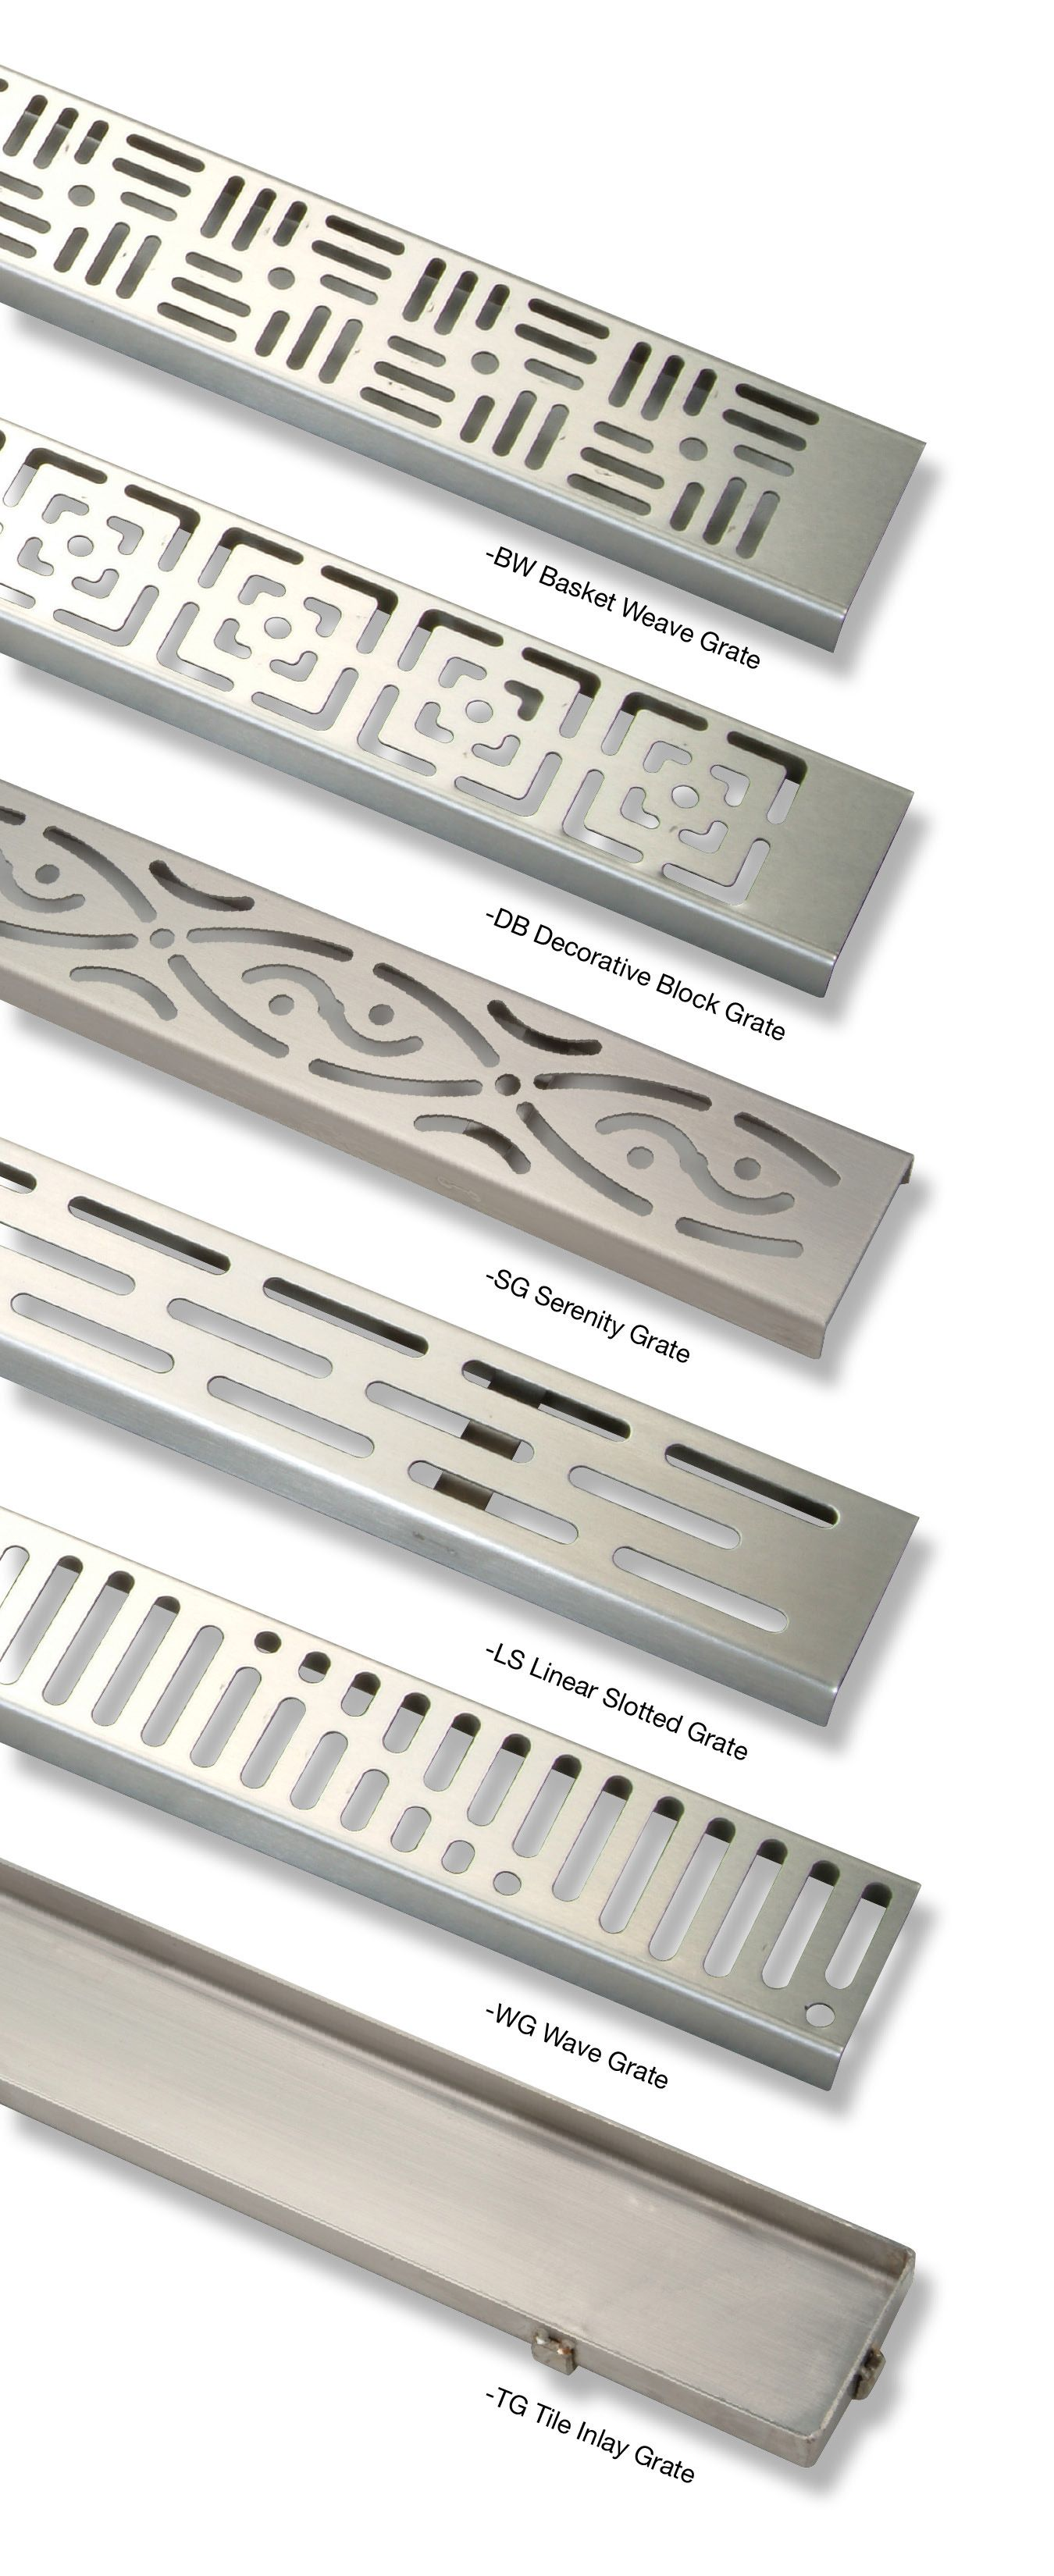 Zurn ZS880 stainless steel linear shower drains | New ...